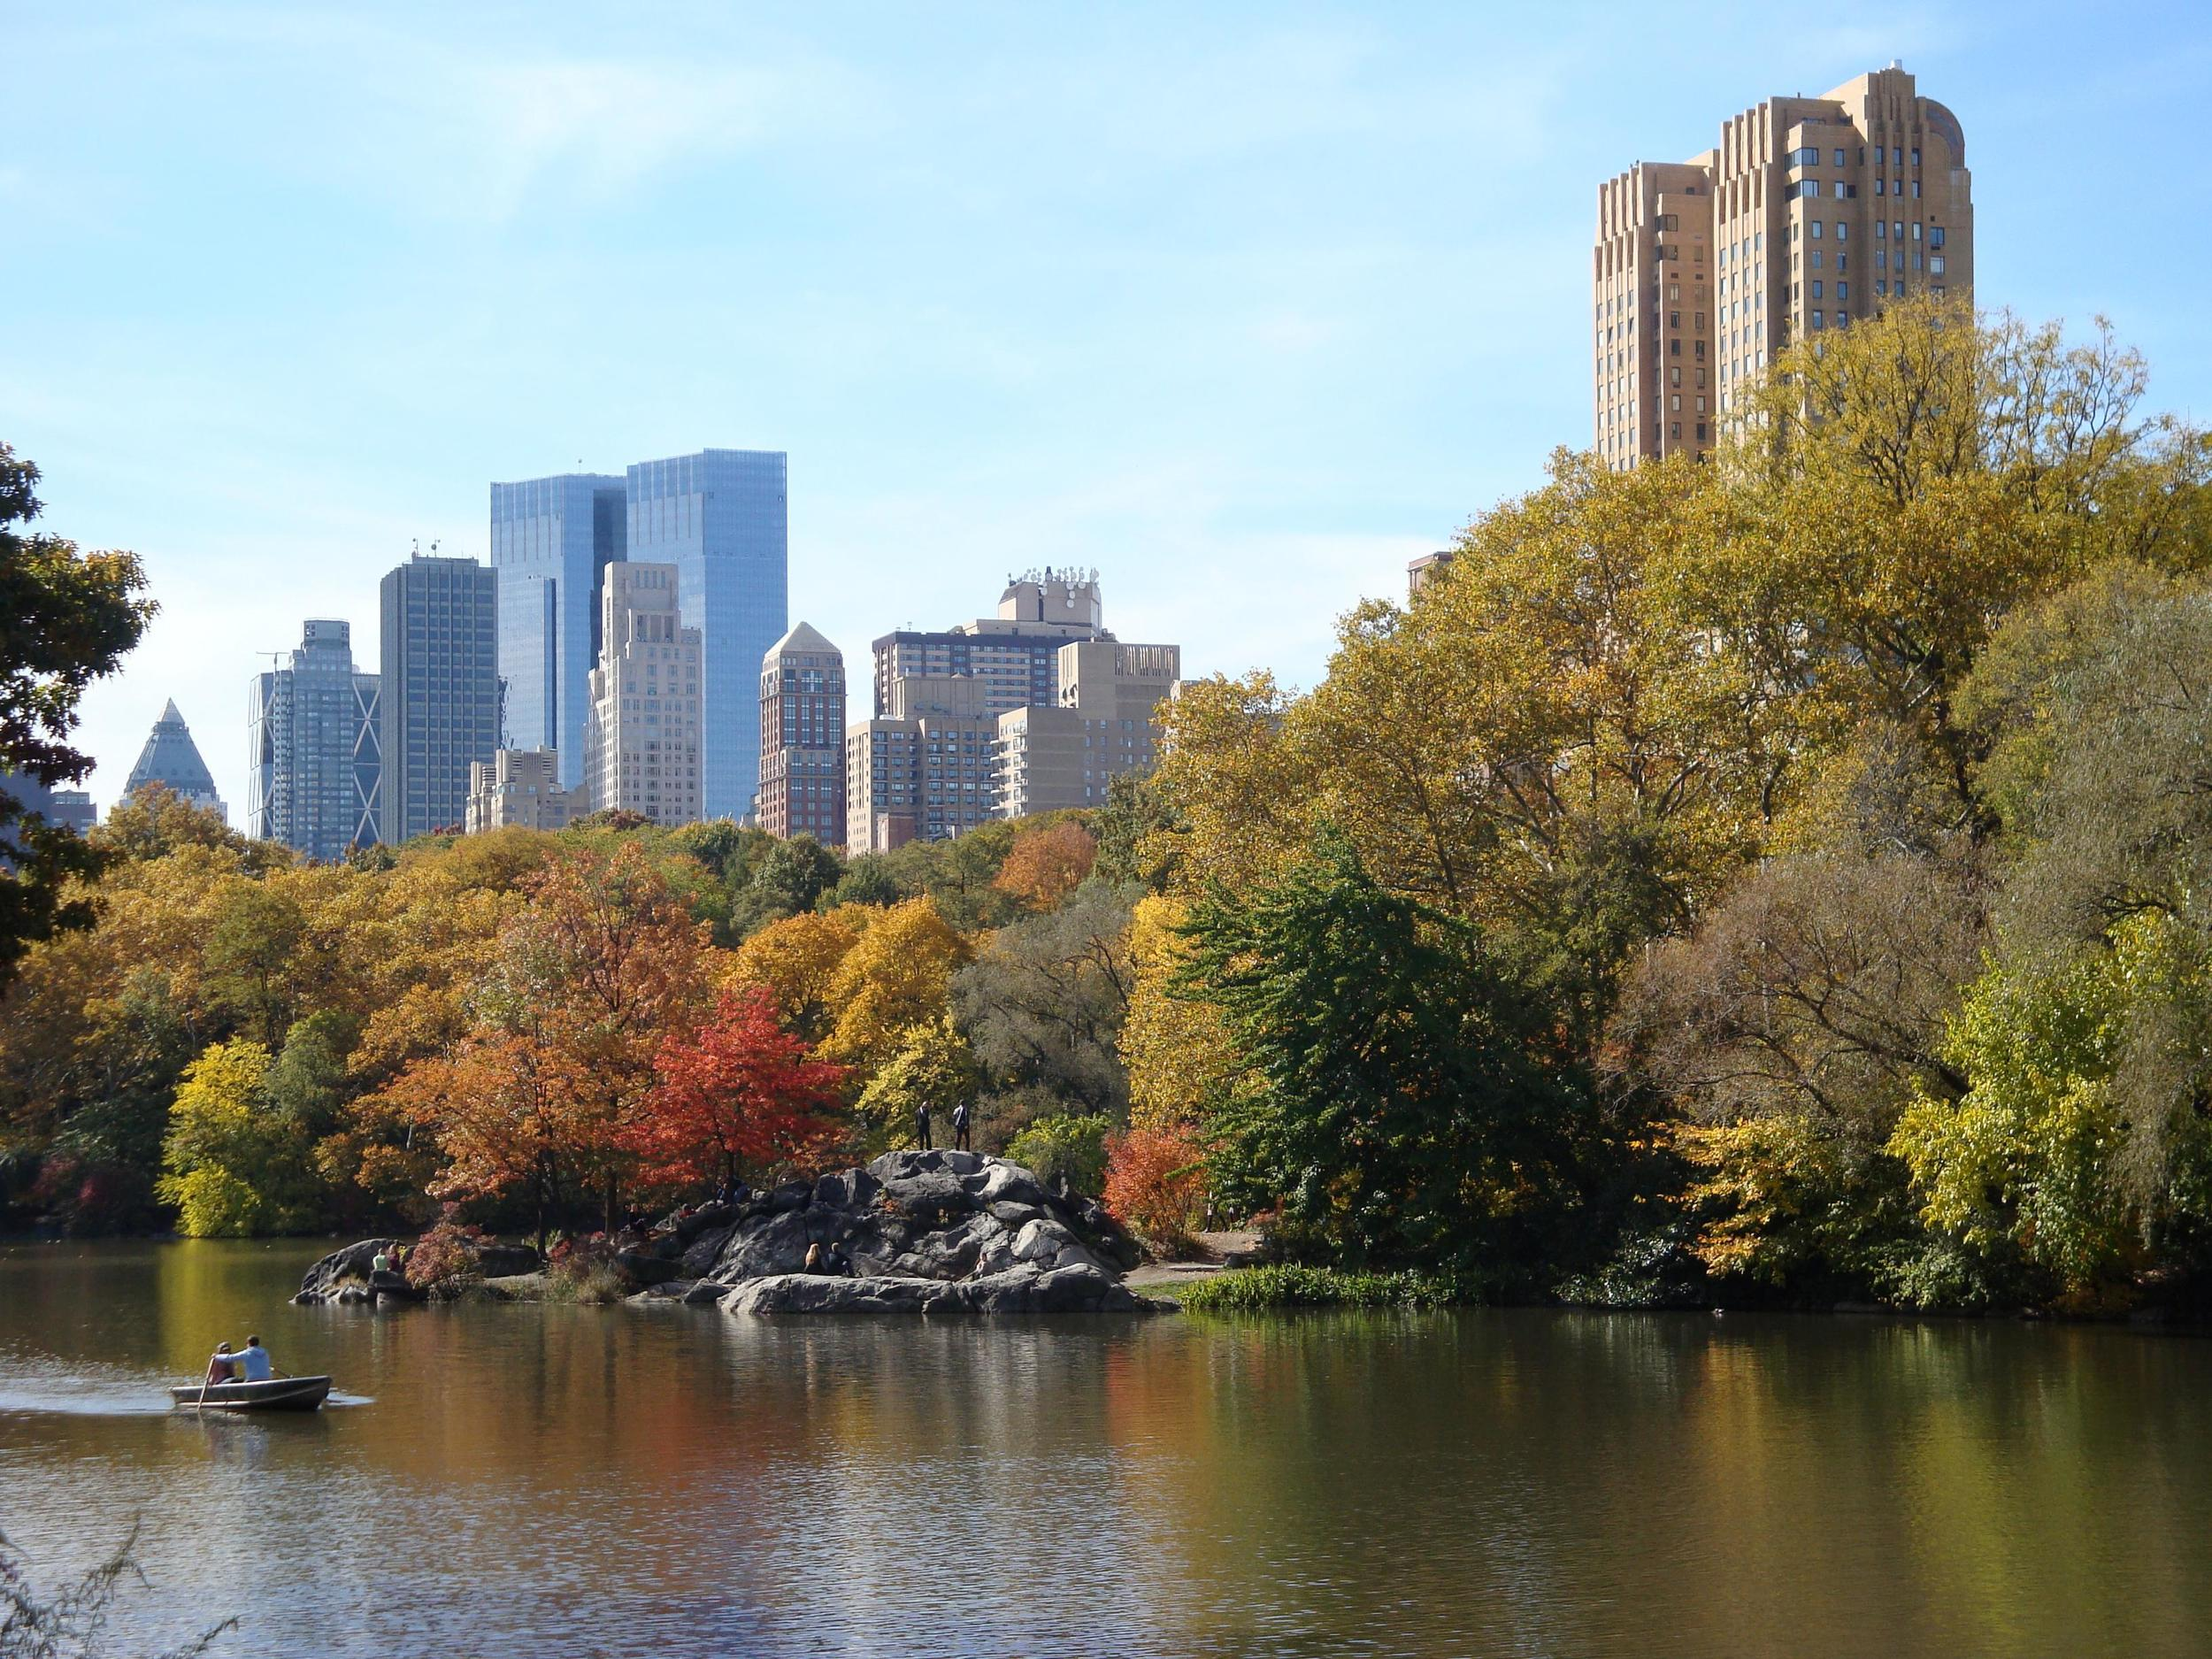 CENTRAL PARK AND CITY VIEW